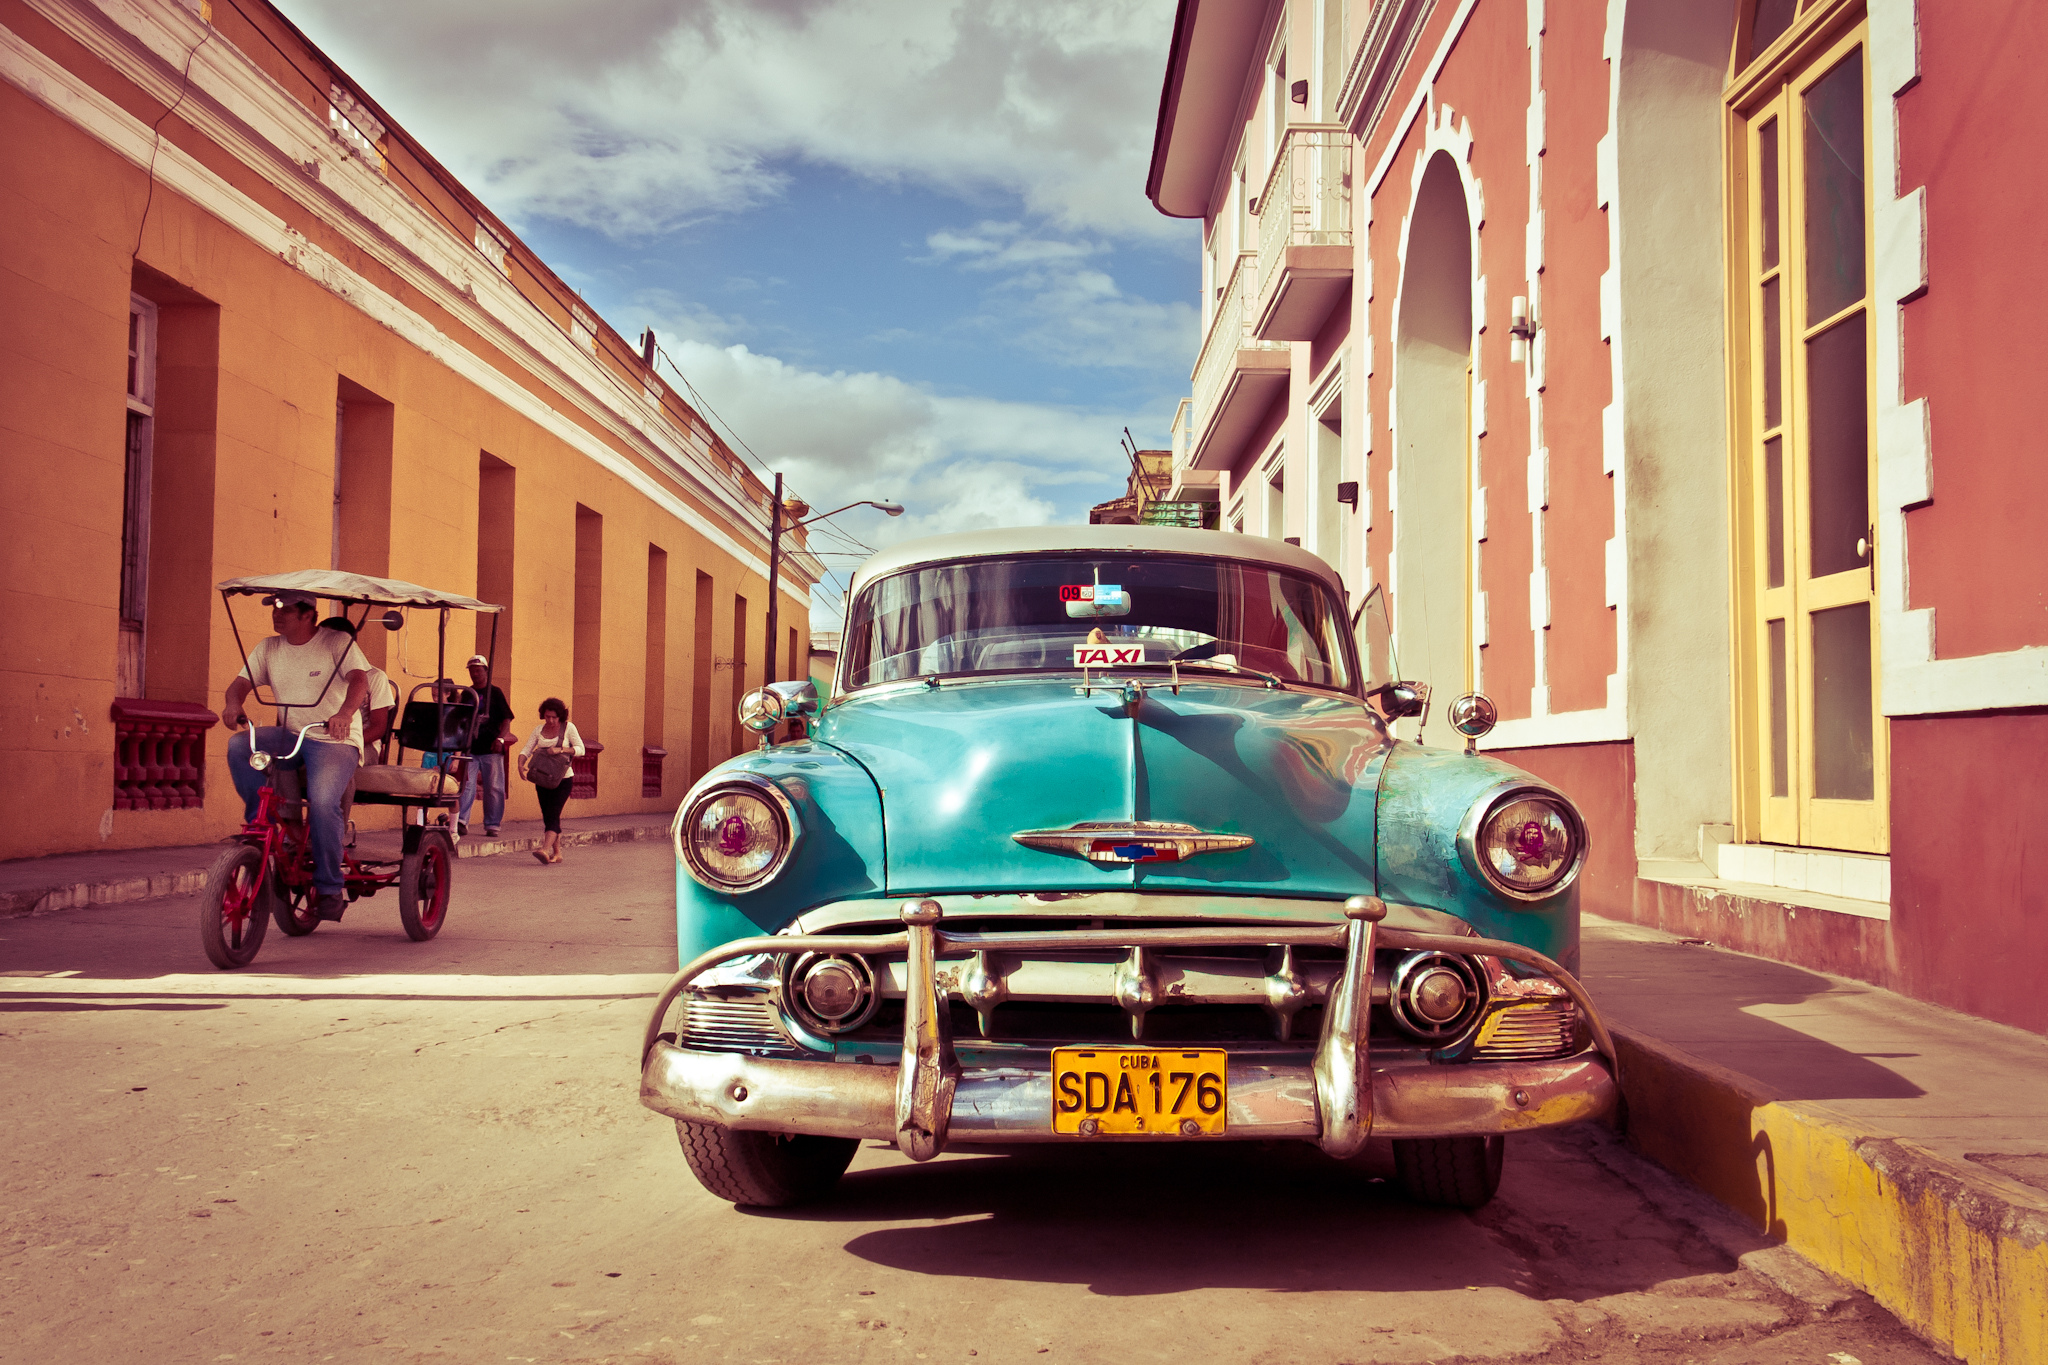 classic-cuban-scene_-image-by-jaume-escofet-cc-by-2_0.jpg